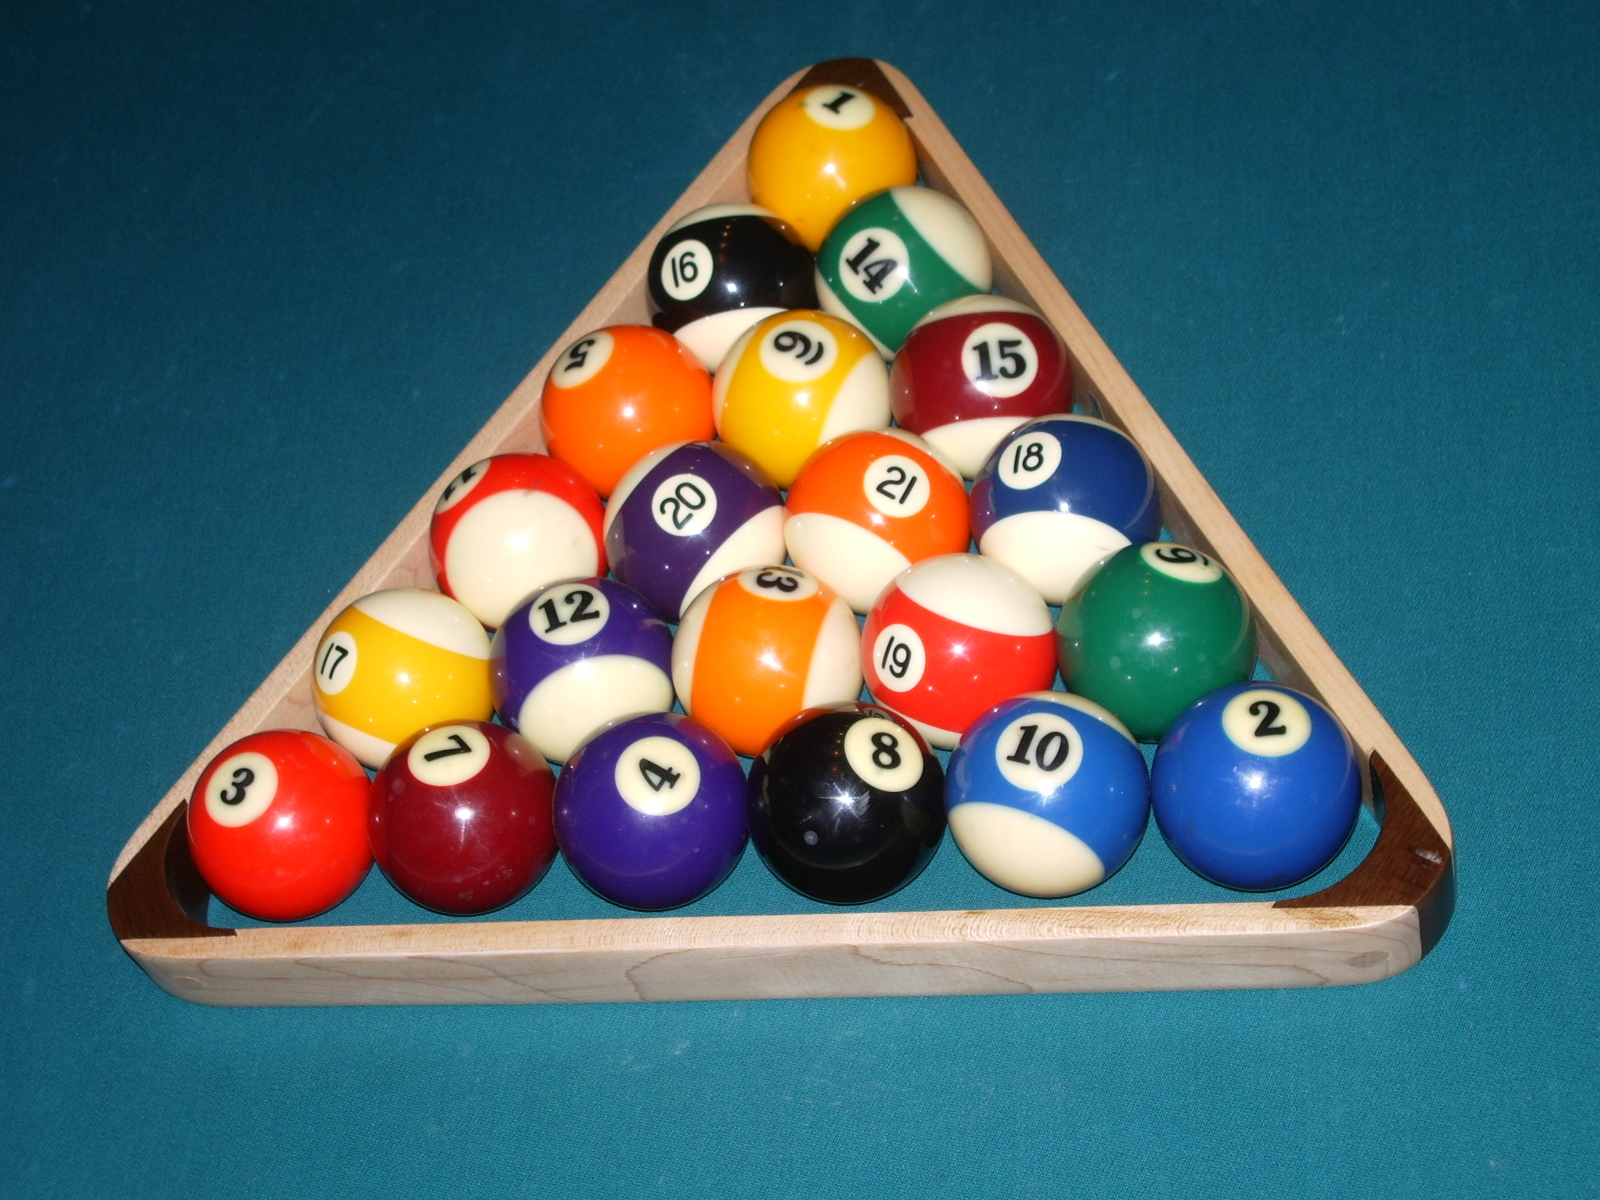 Billiards - 10 photo